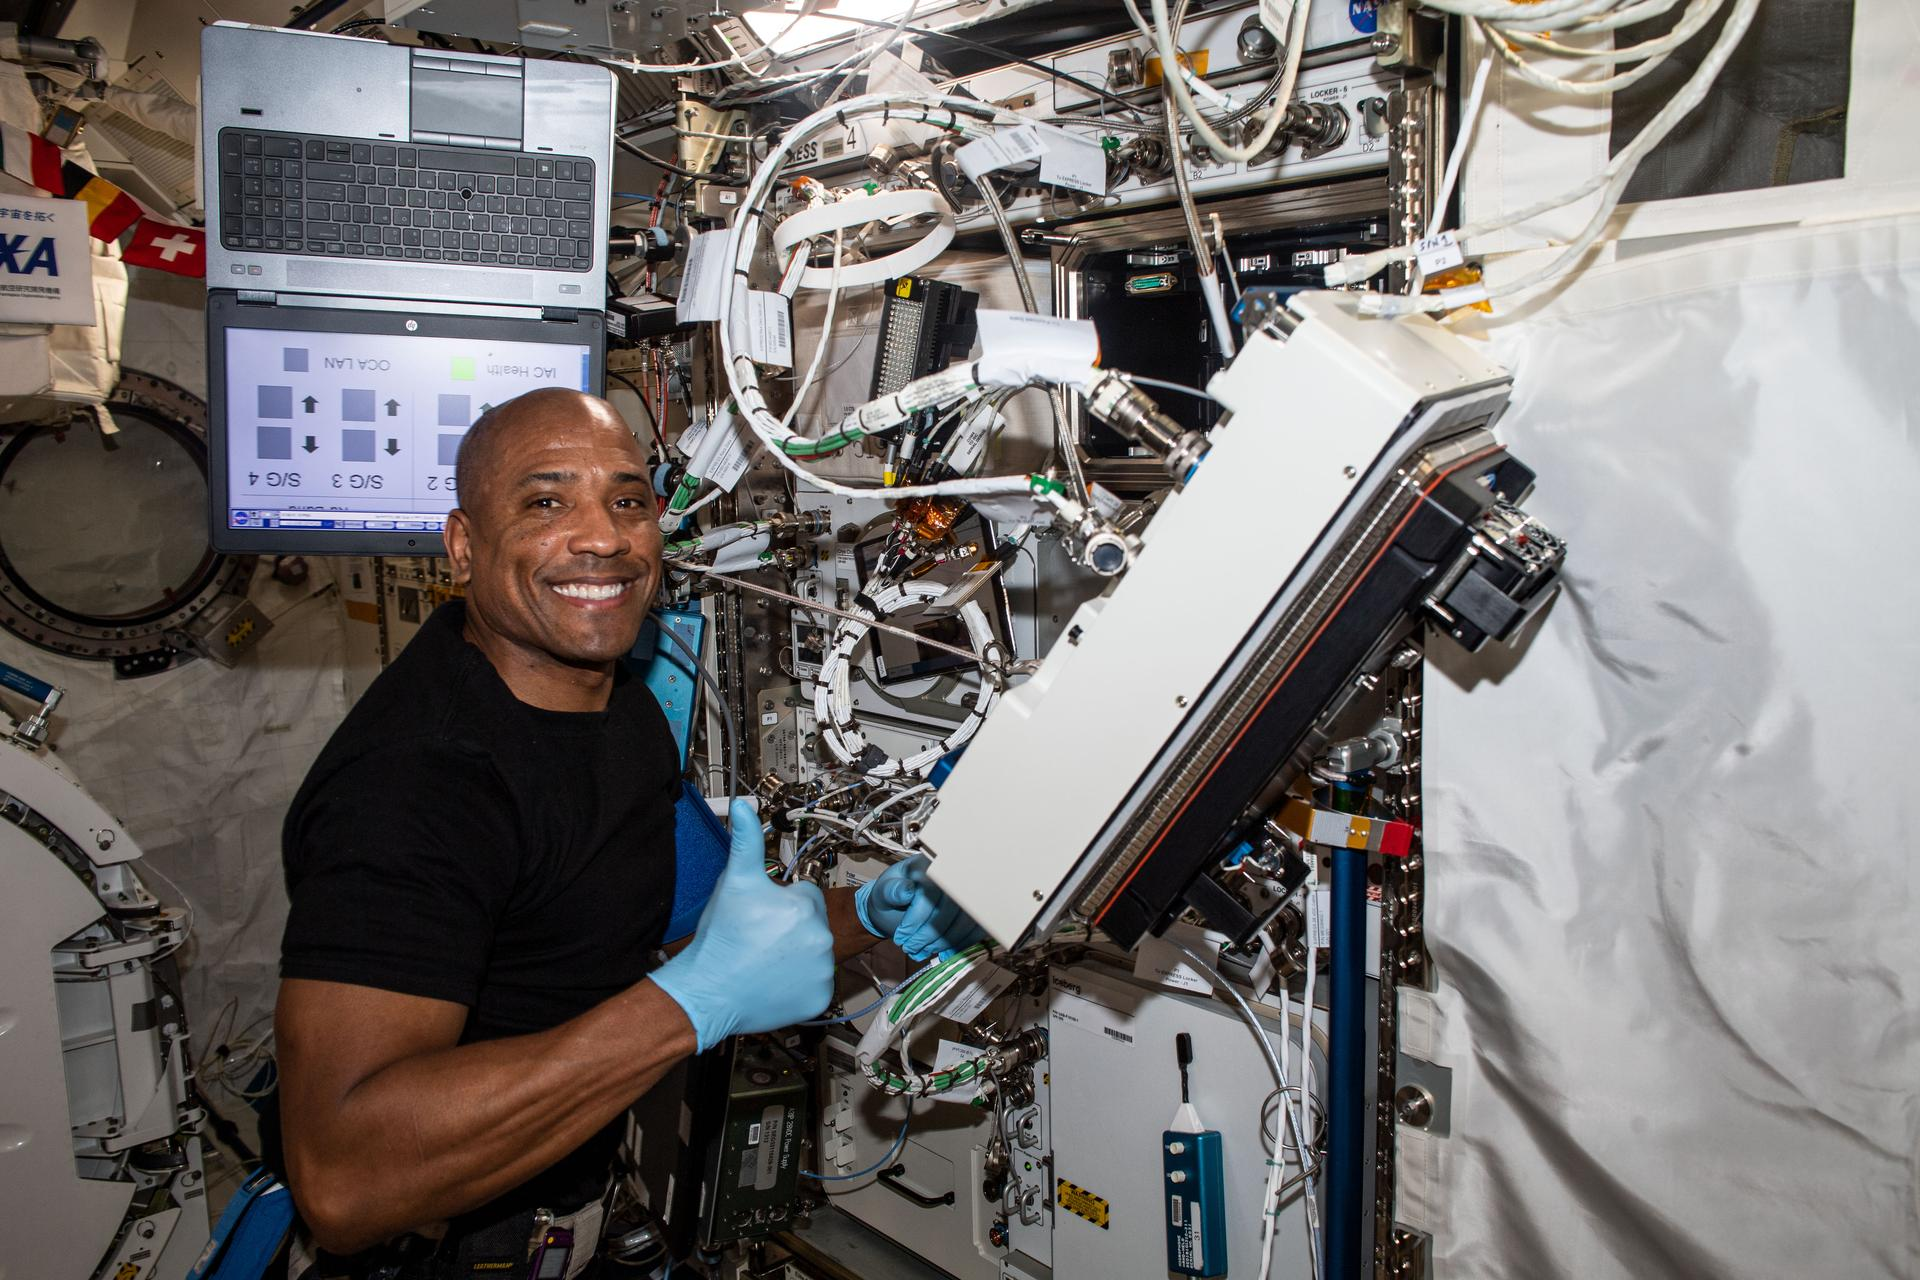 NASA astronaut and Expedition 64 Flight Engineer Victor Glover is pictured inside Japan's Kibo laboratory module installing research gear. He is looking at the camera and smiling. He is giving a thumbs up!